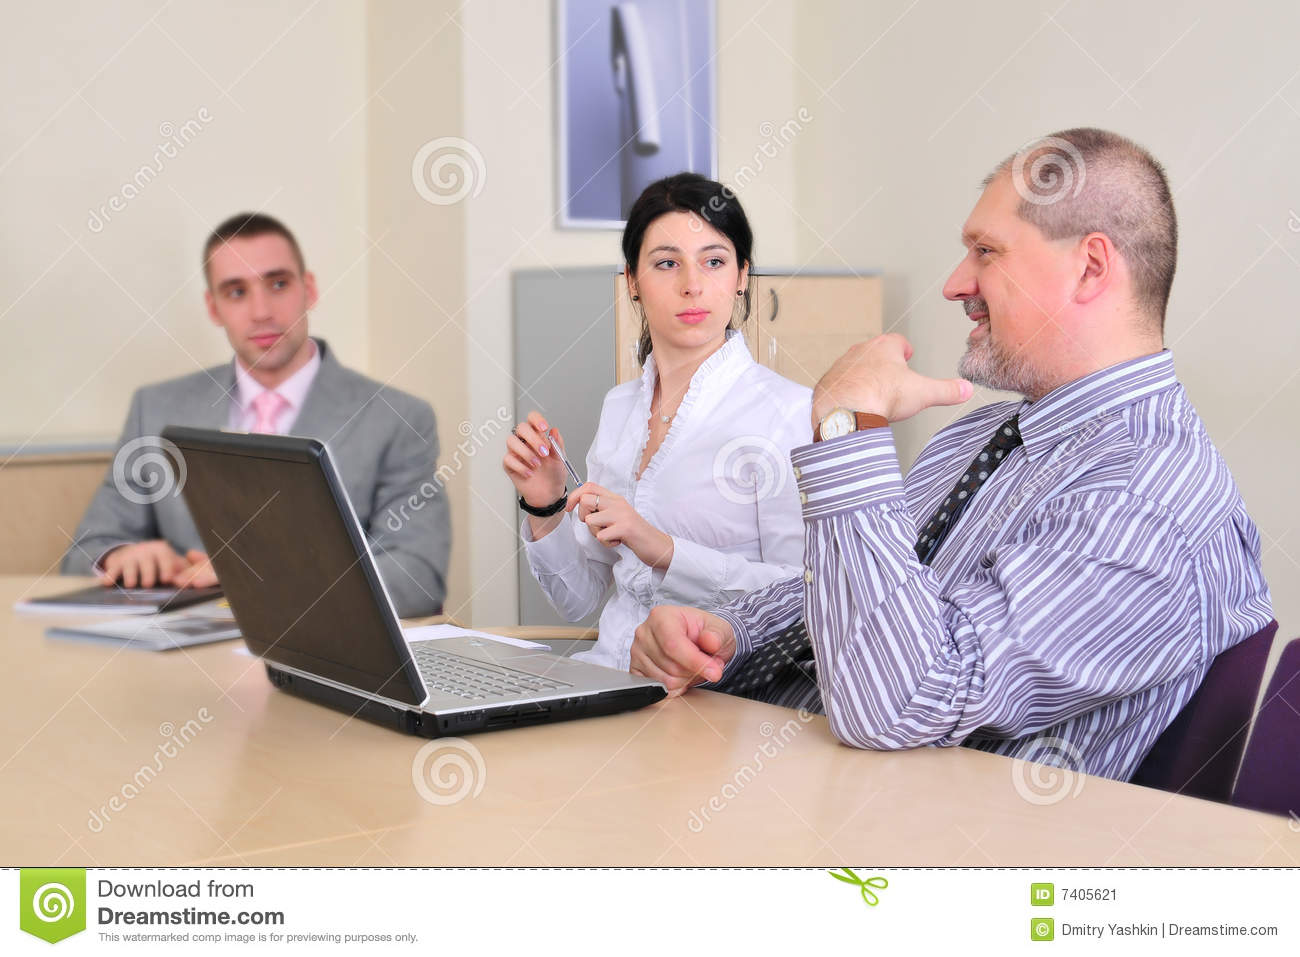 Meeting making and presentation